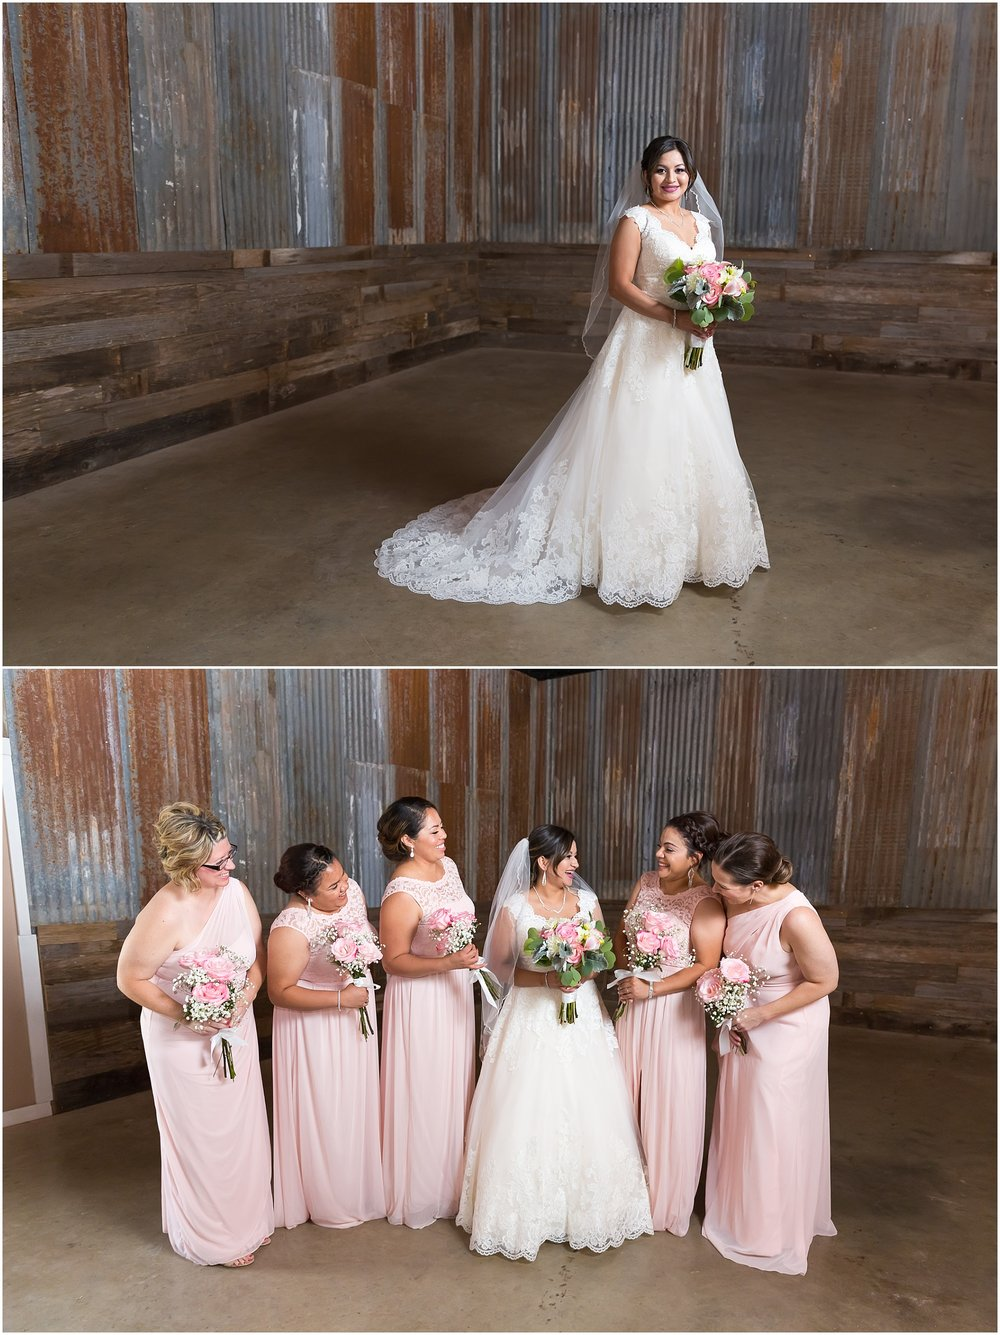 Rustic wedding at Rustic Acres in Belton, Texas - Jason & Melaina Photography - www.jasonandmelaina.com